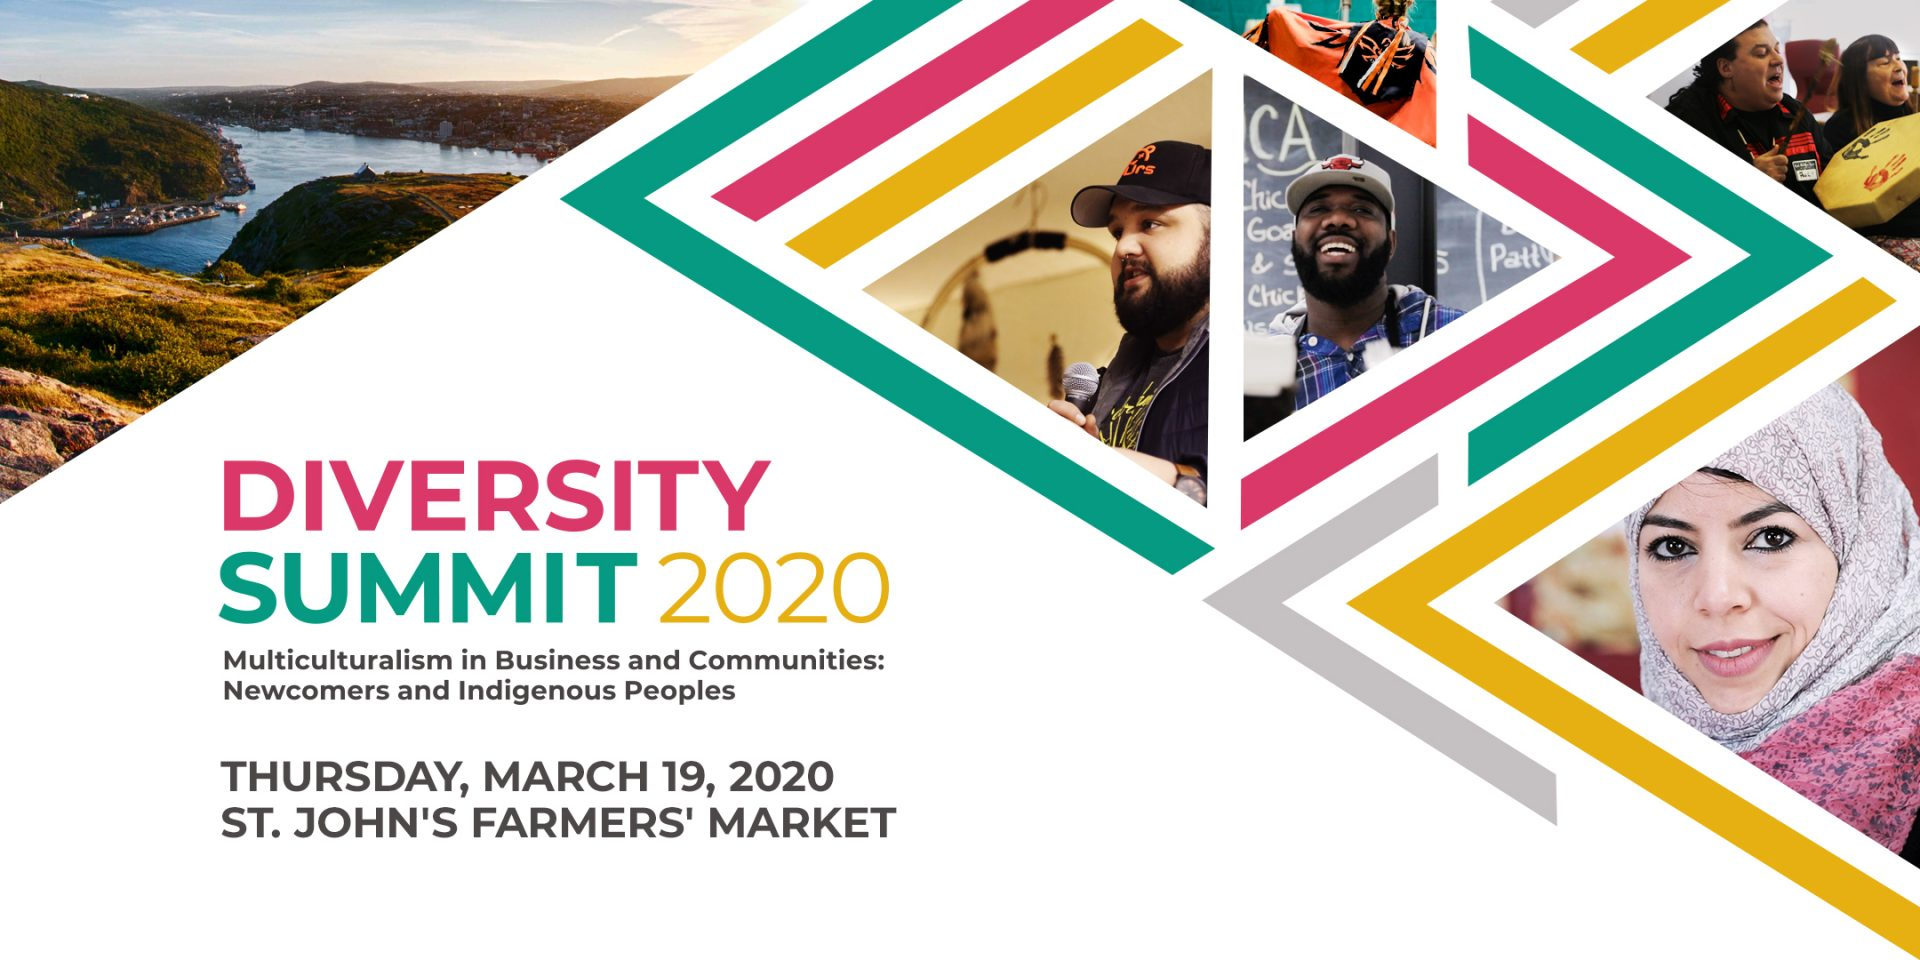 ANC_DiversitySummit2020_CollageWide-3